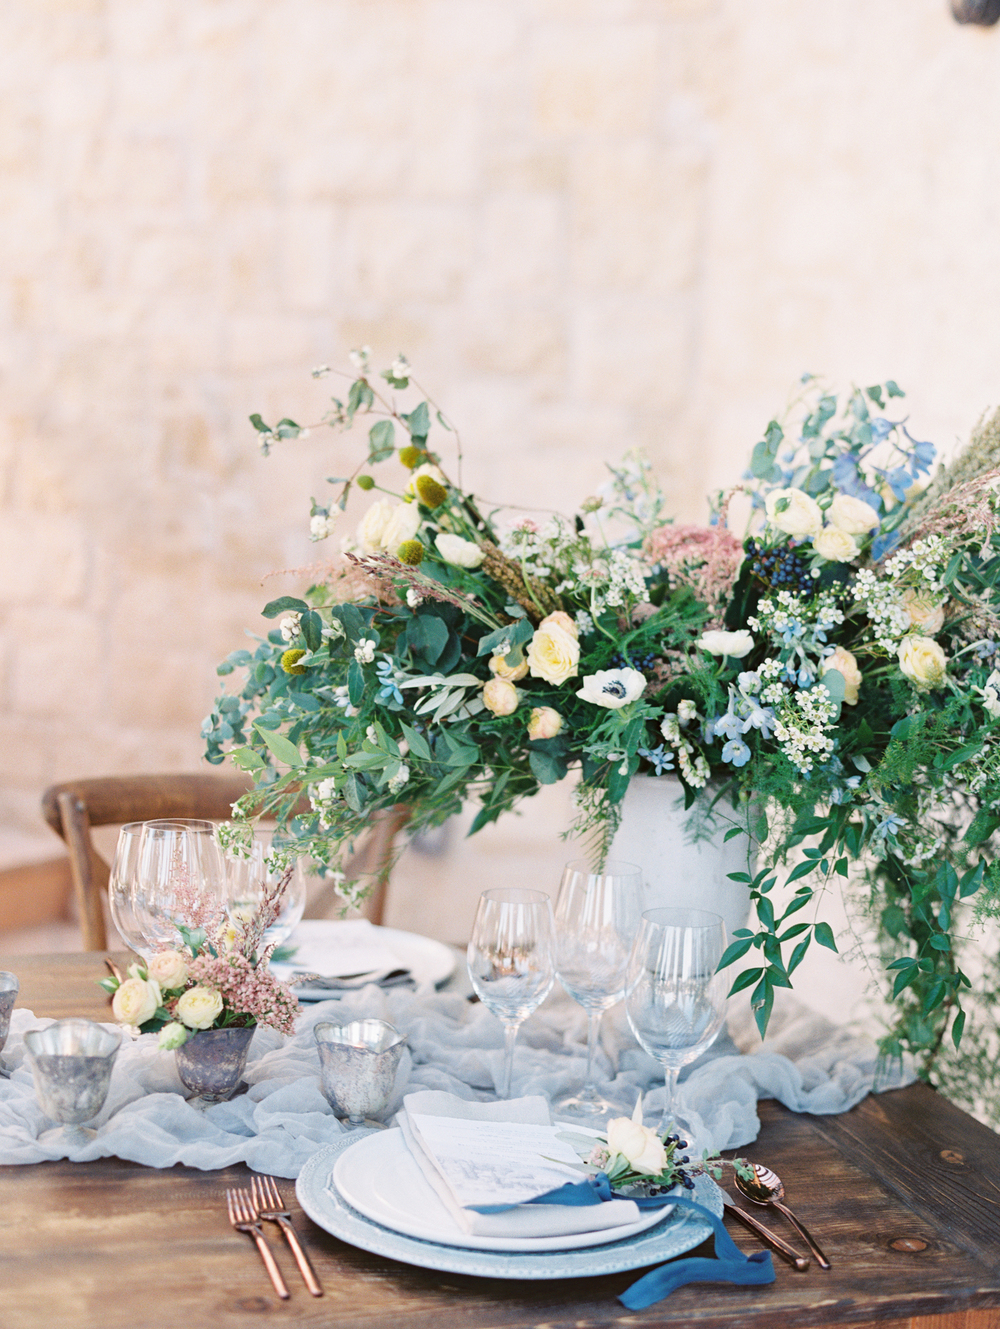 Wedding Details Inspired by Italy | D'Arcy Benincosa | Michelle Leo Events | Utah Wedding Planning and Design